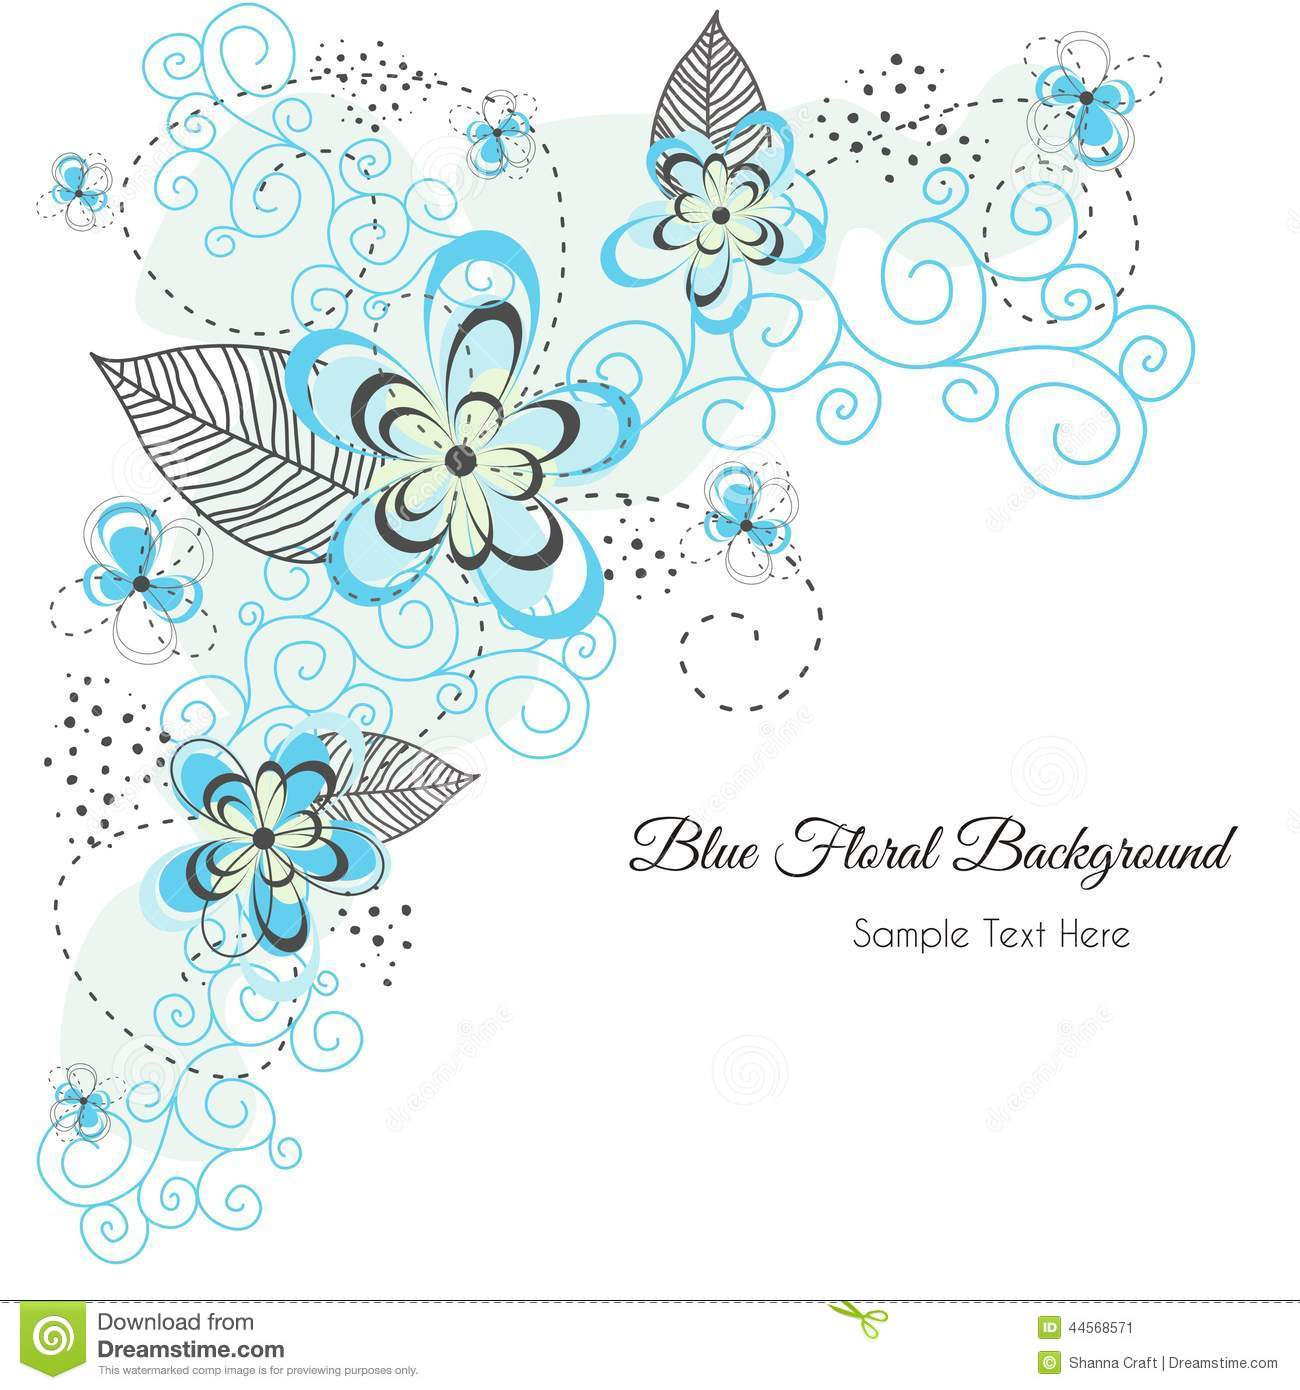 Blue Wedding Invitation Designs as awesome invitations example